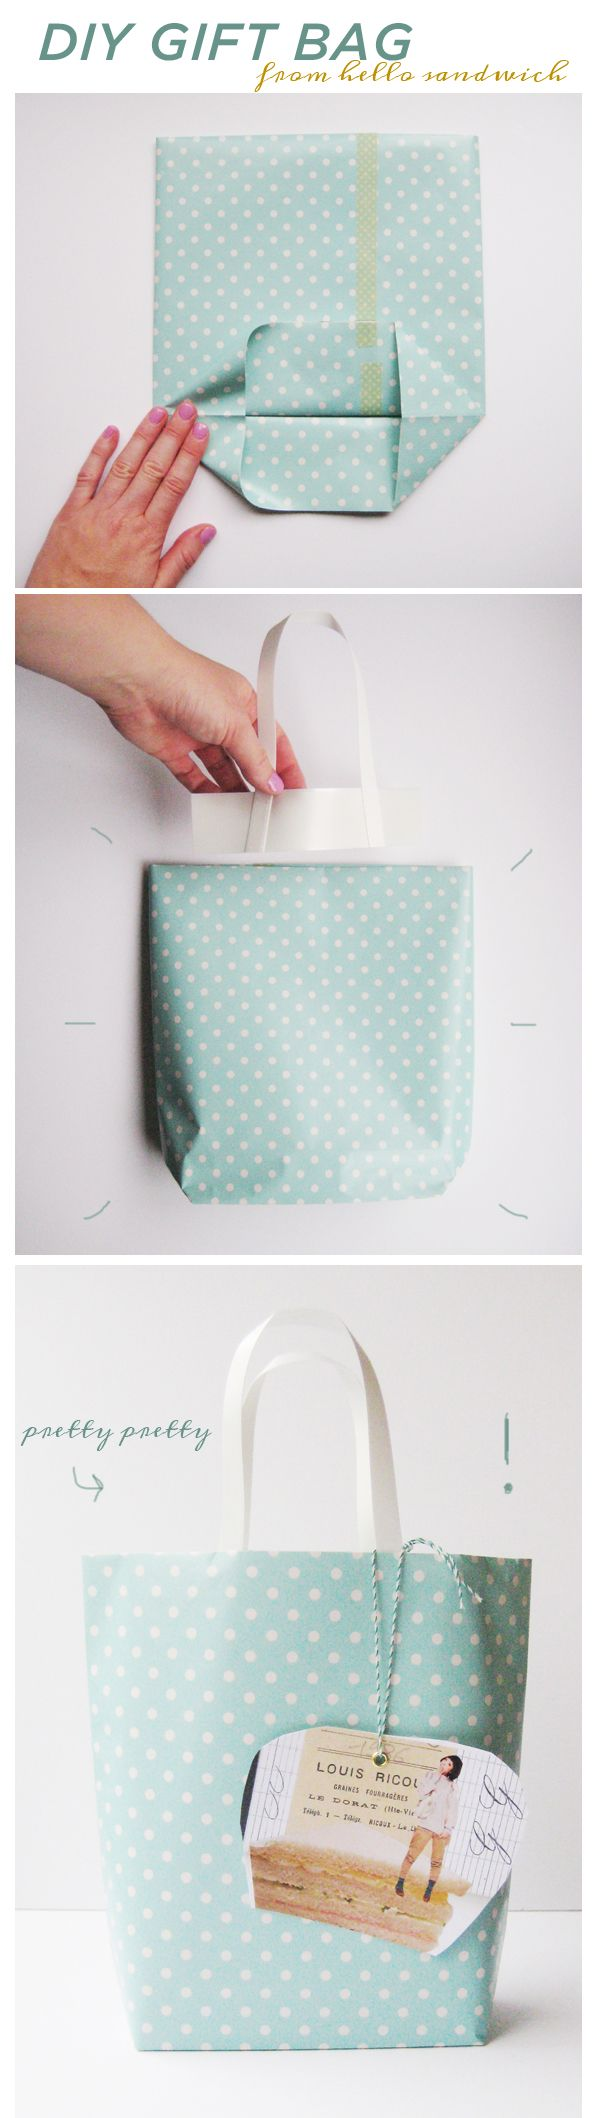 Make your own gift bag:)